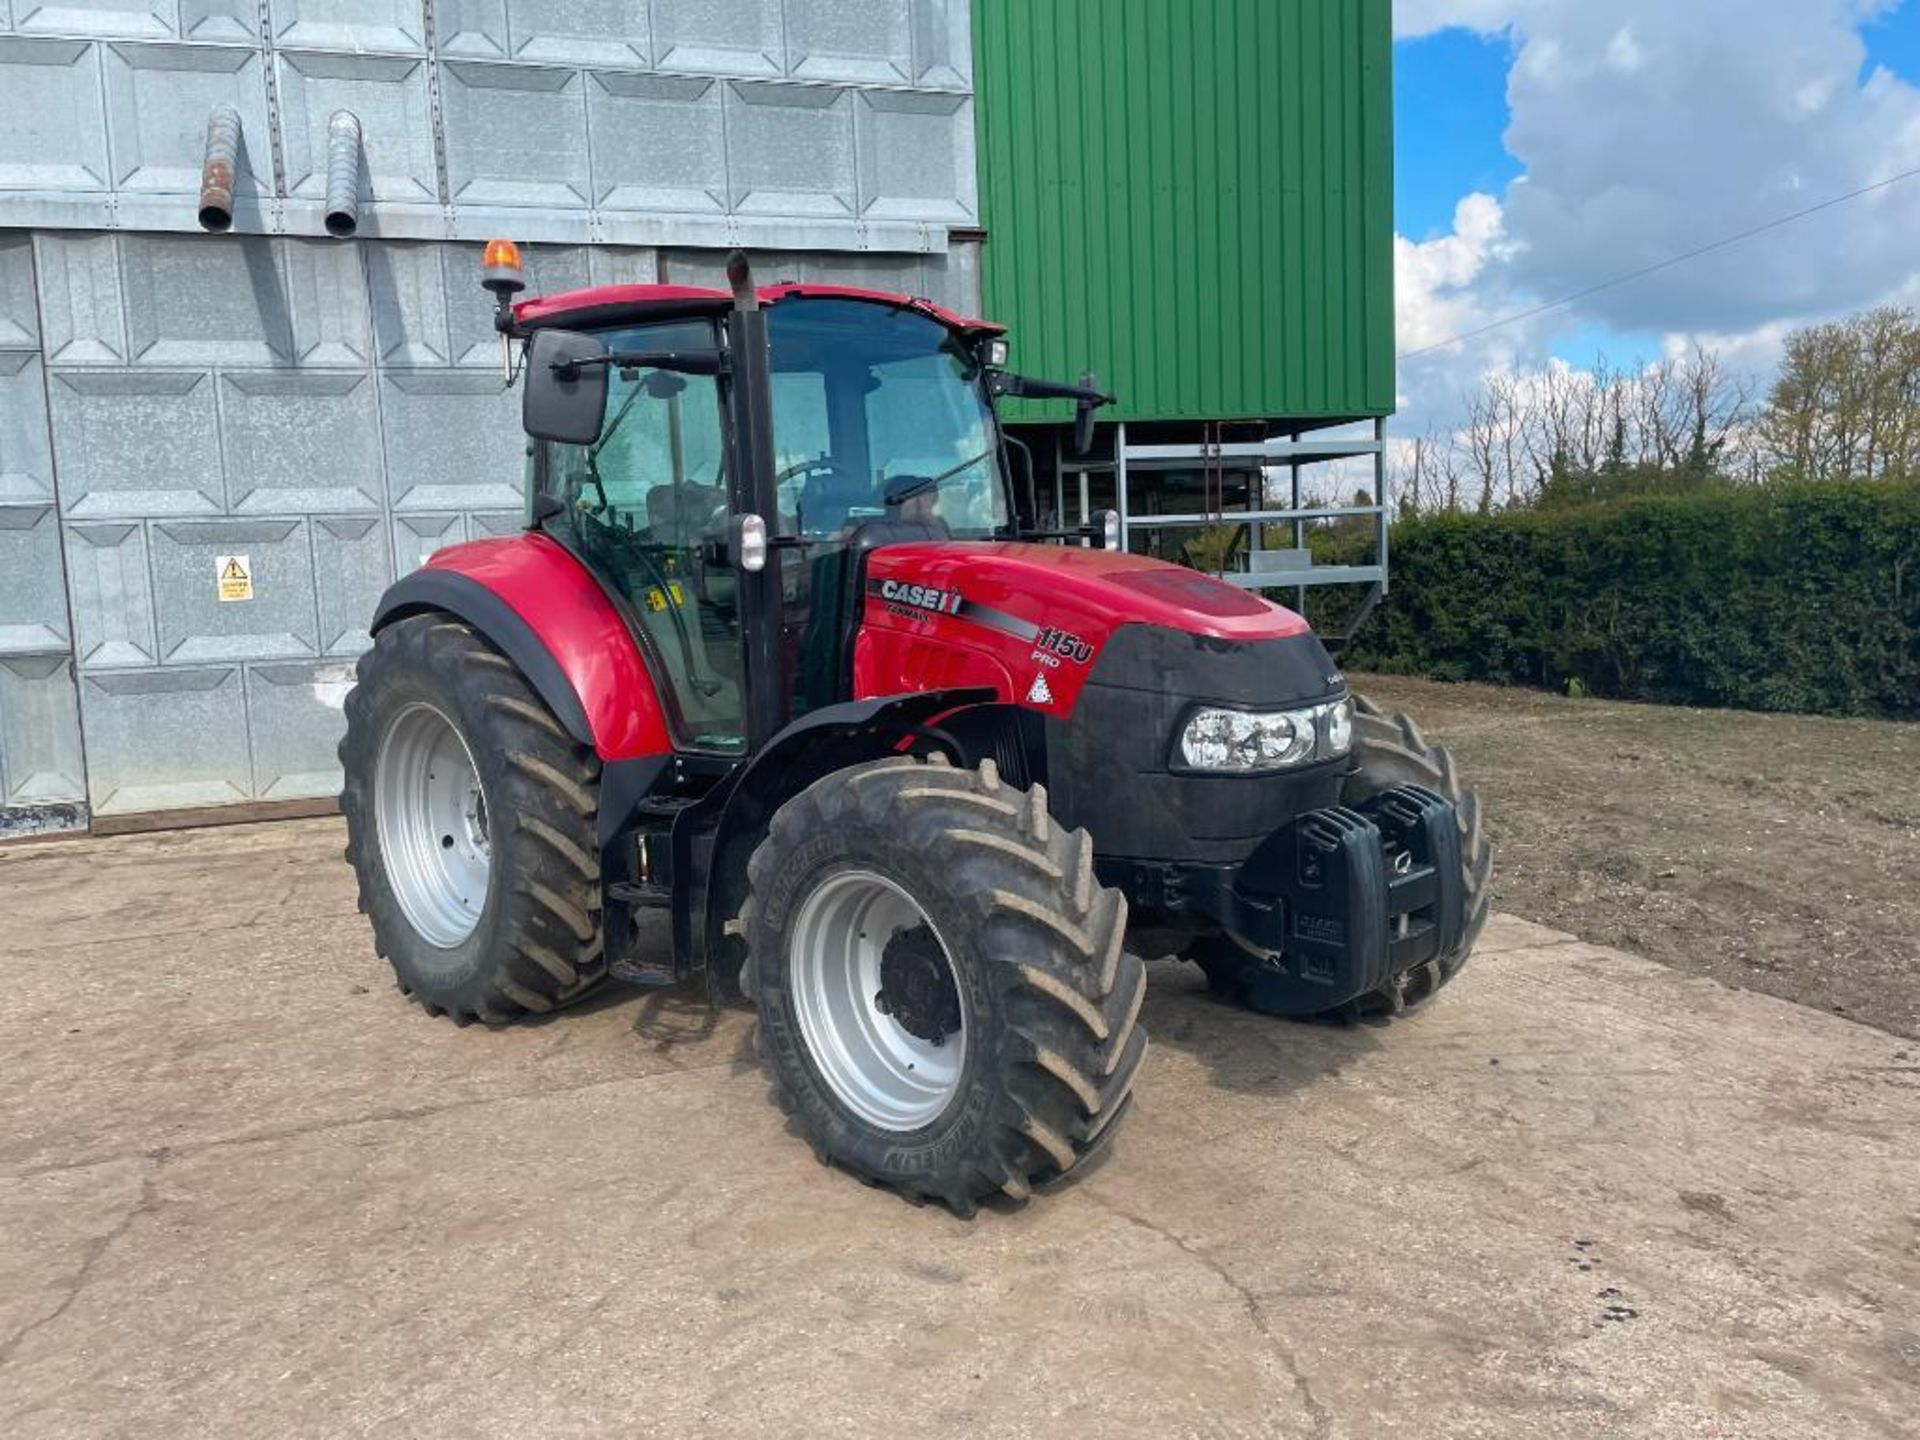 2014 Case IH Farmall 115U PRO 40Kph 4wd tractor with 2 spools, PUH on 440/65R24 front and 540/65R34 - Image 8 of 10